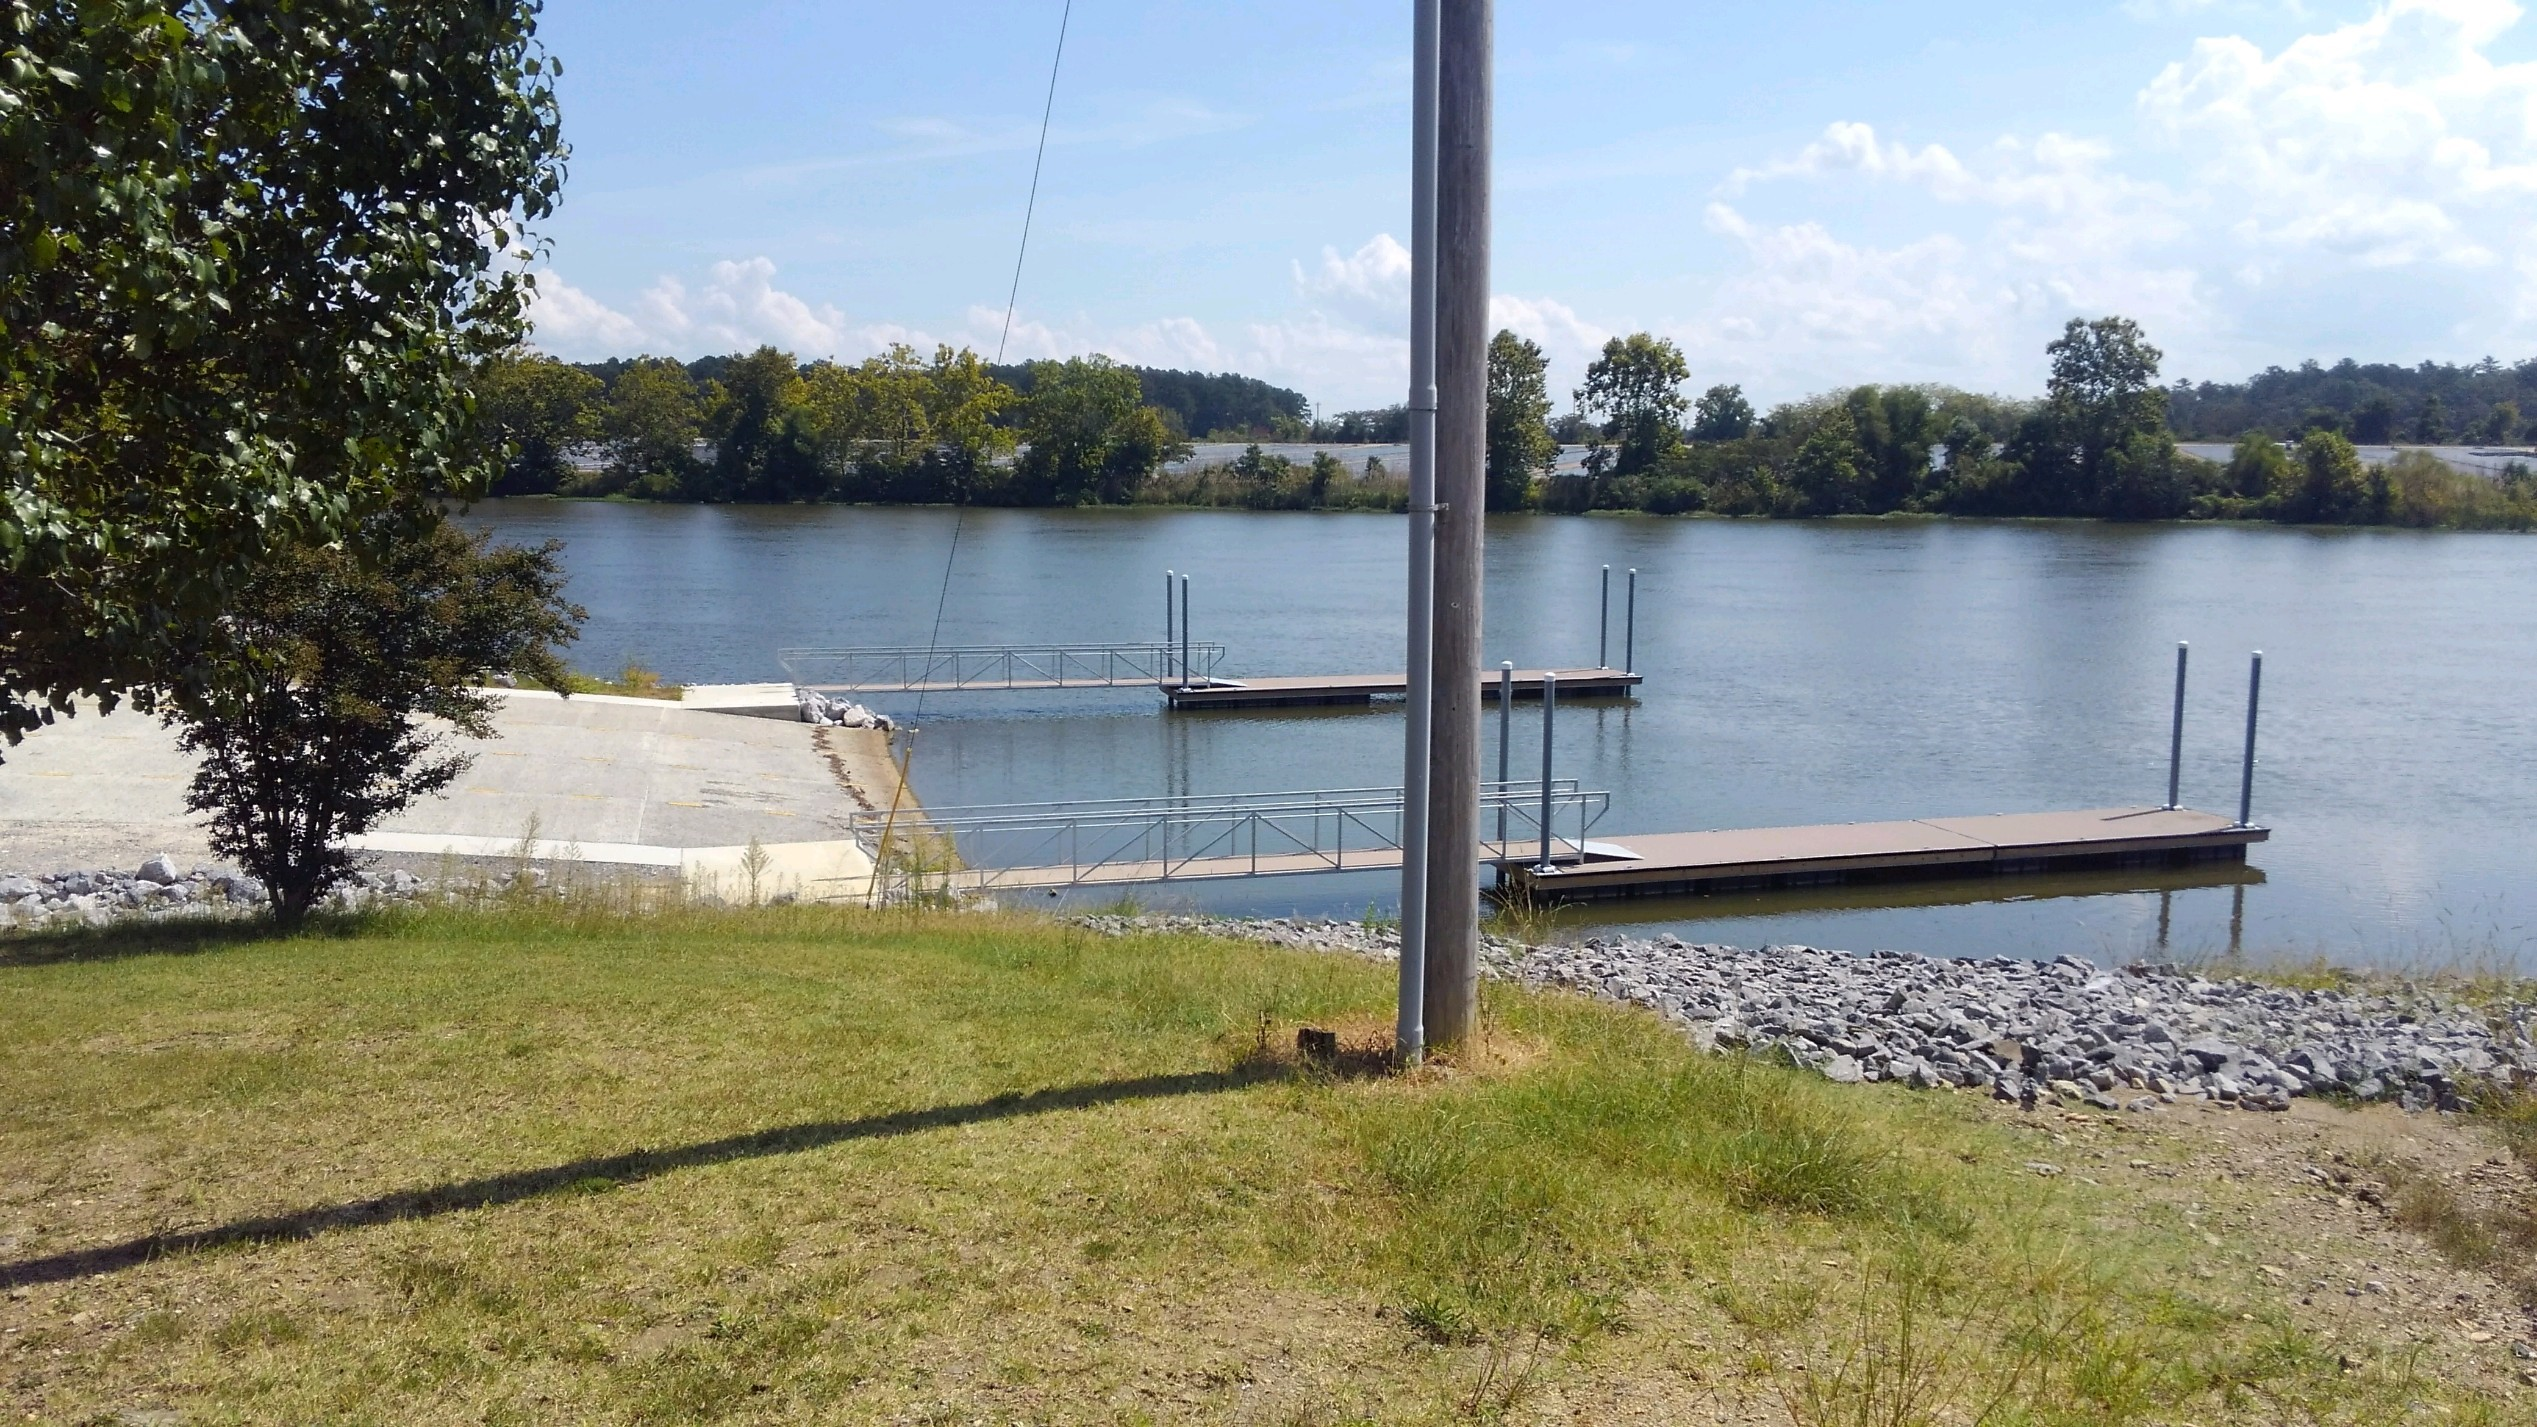 The new Leesburg Boat Landing is large enough to accommodate most local and regional fishing tournaments.